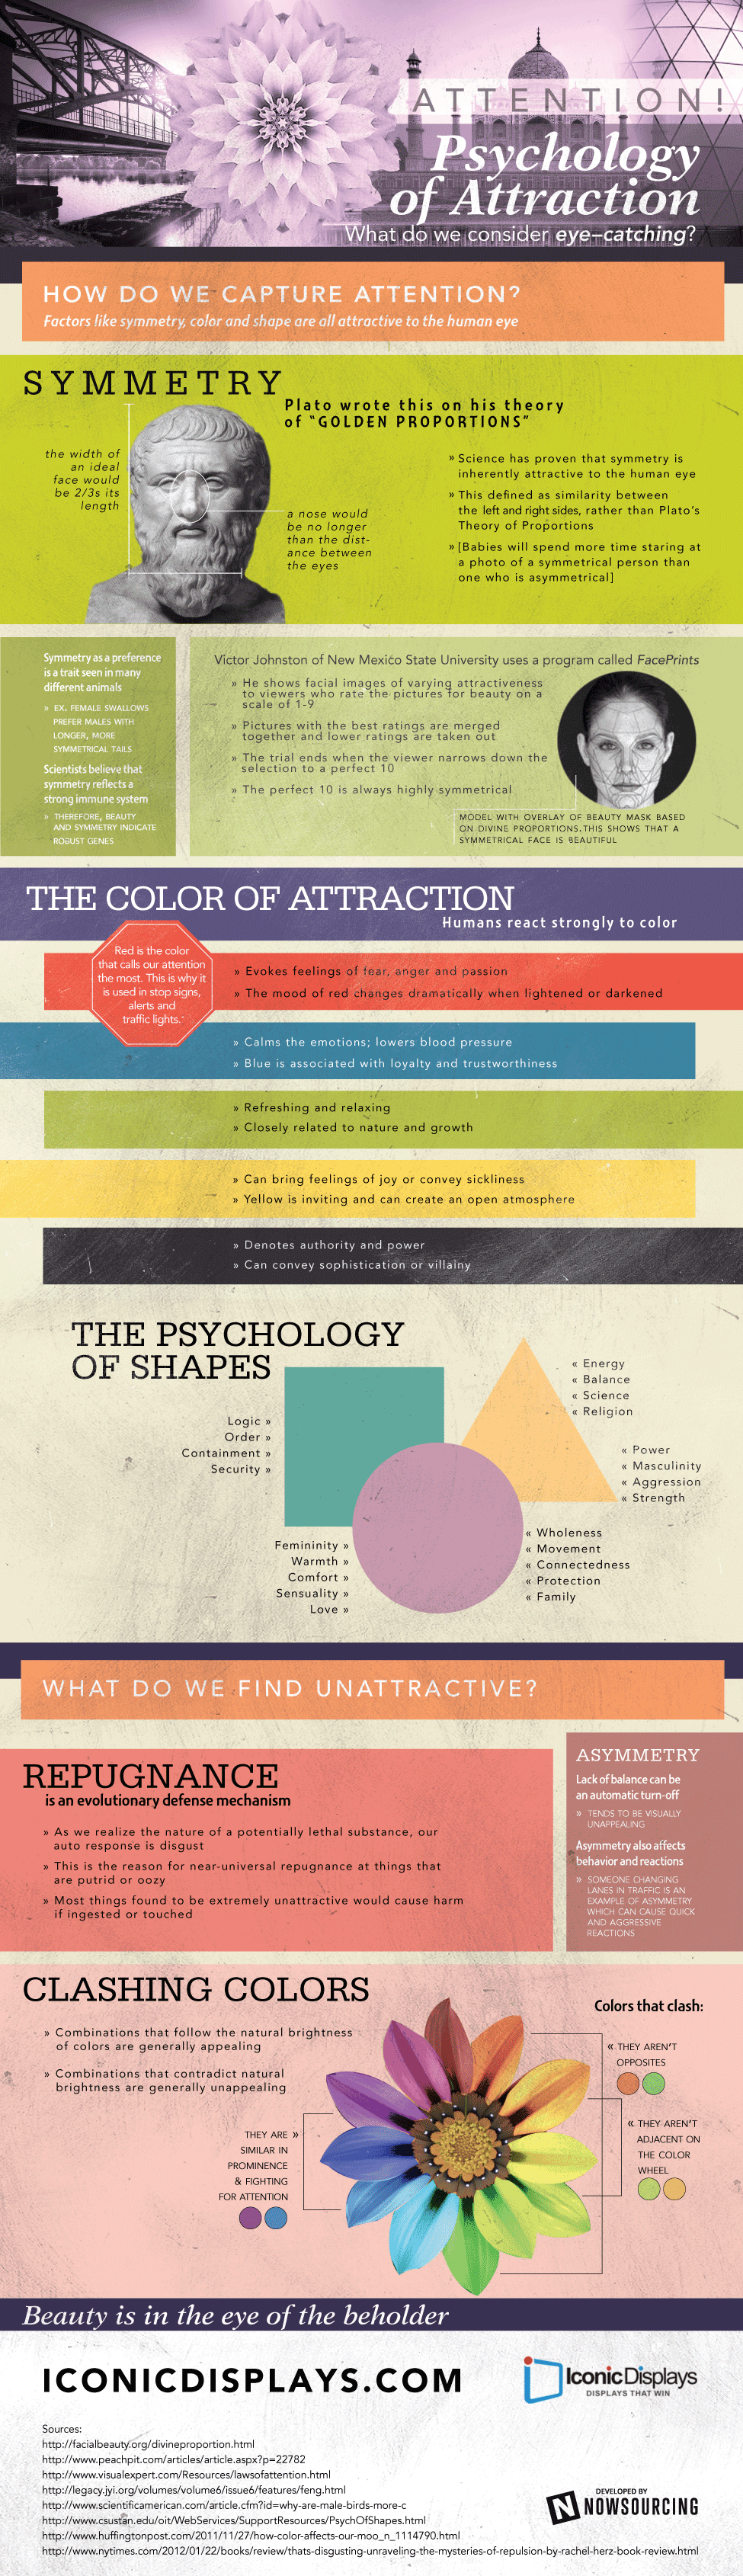 The Psychology of Attraction (Infographic)